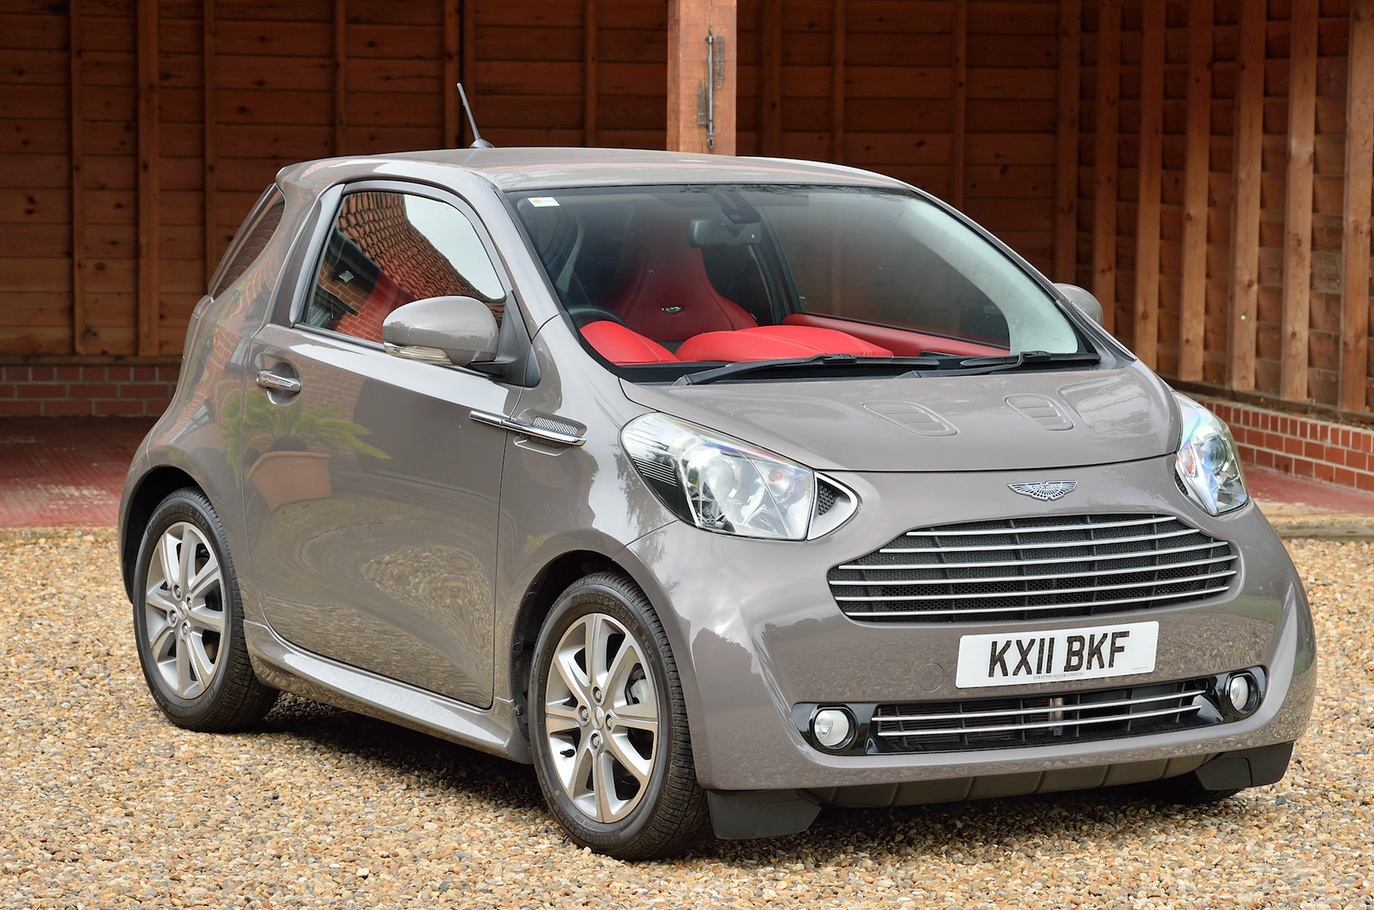 https://collectingcars.com/for-sale/2011-aston-martin-cygnet-1